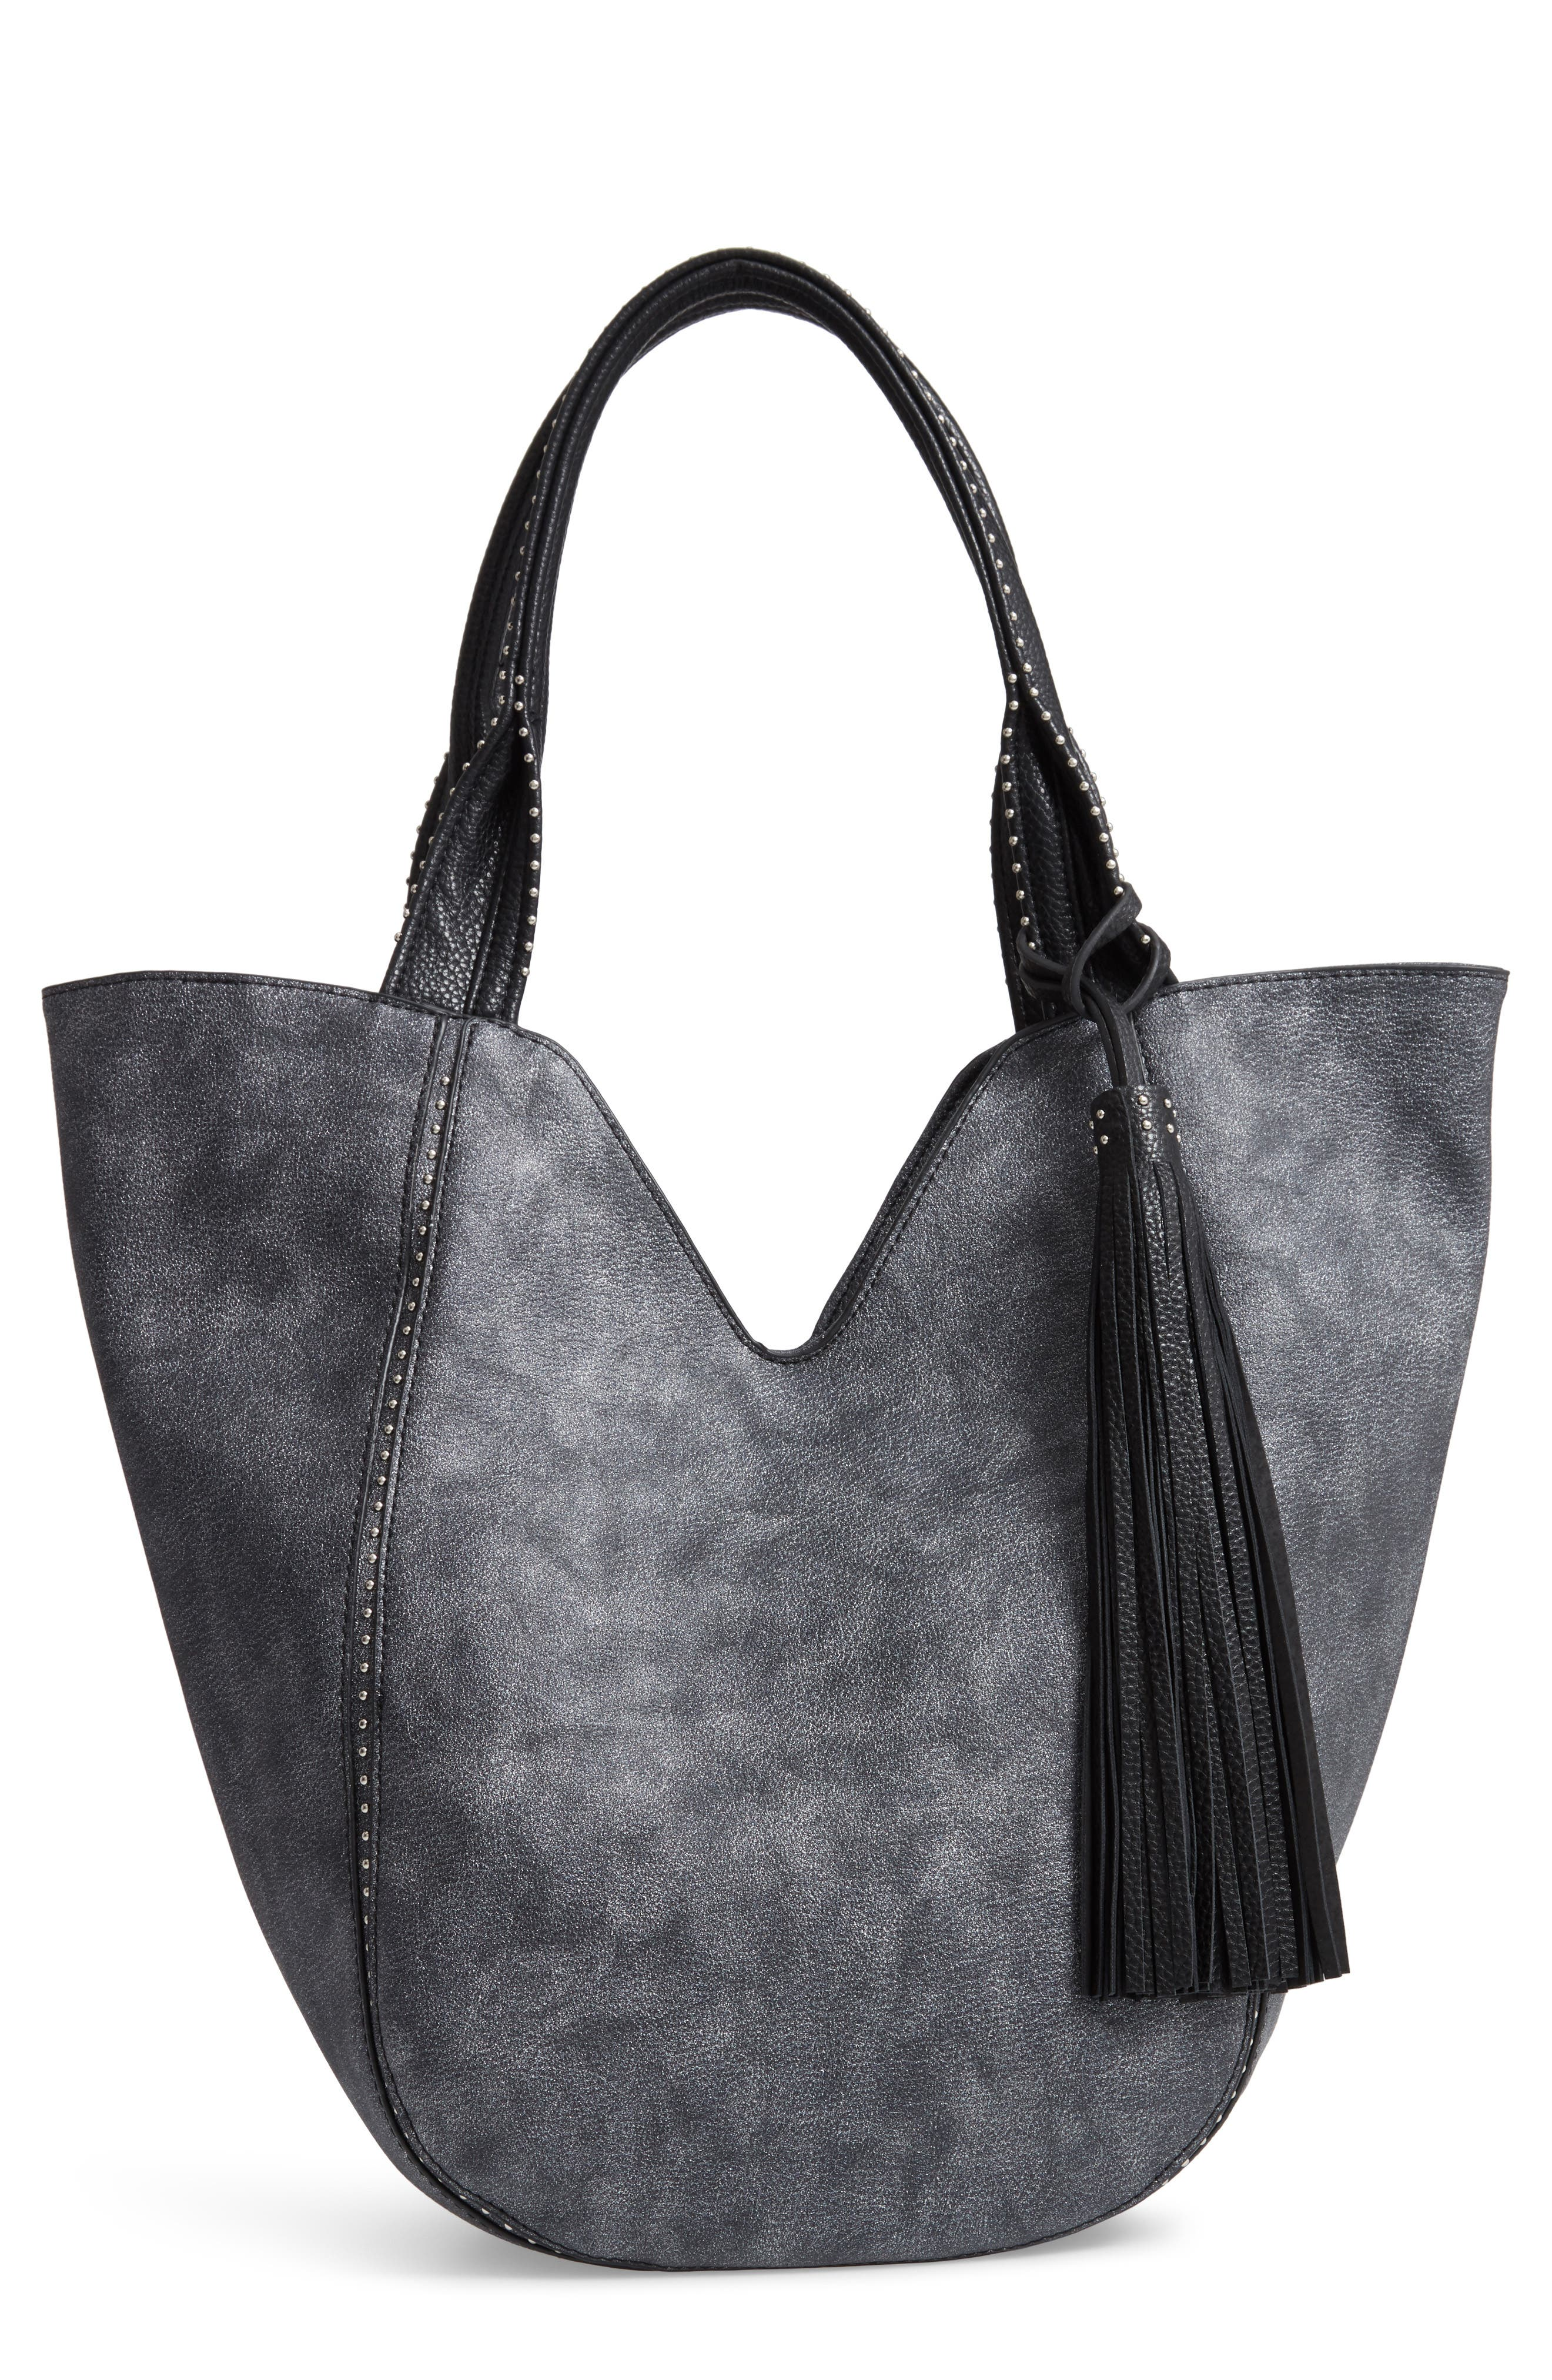 SONDRA ROBERTS Studded Faux Leather Shopper - Grey in Pewter Grey